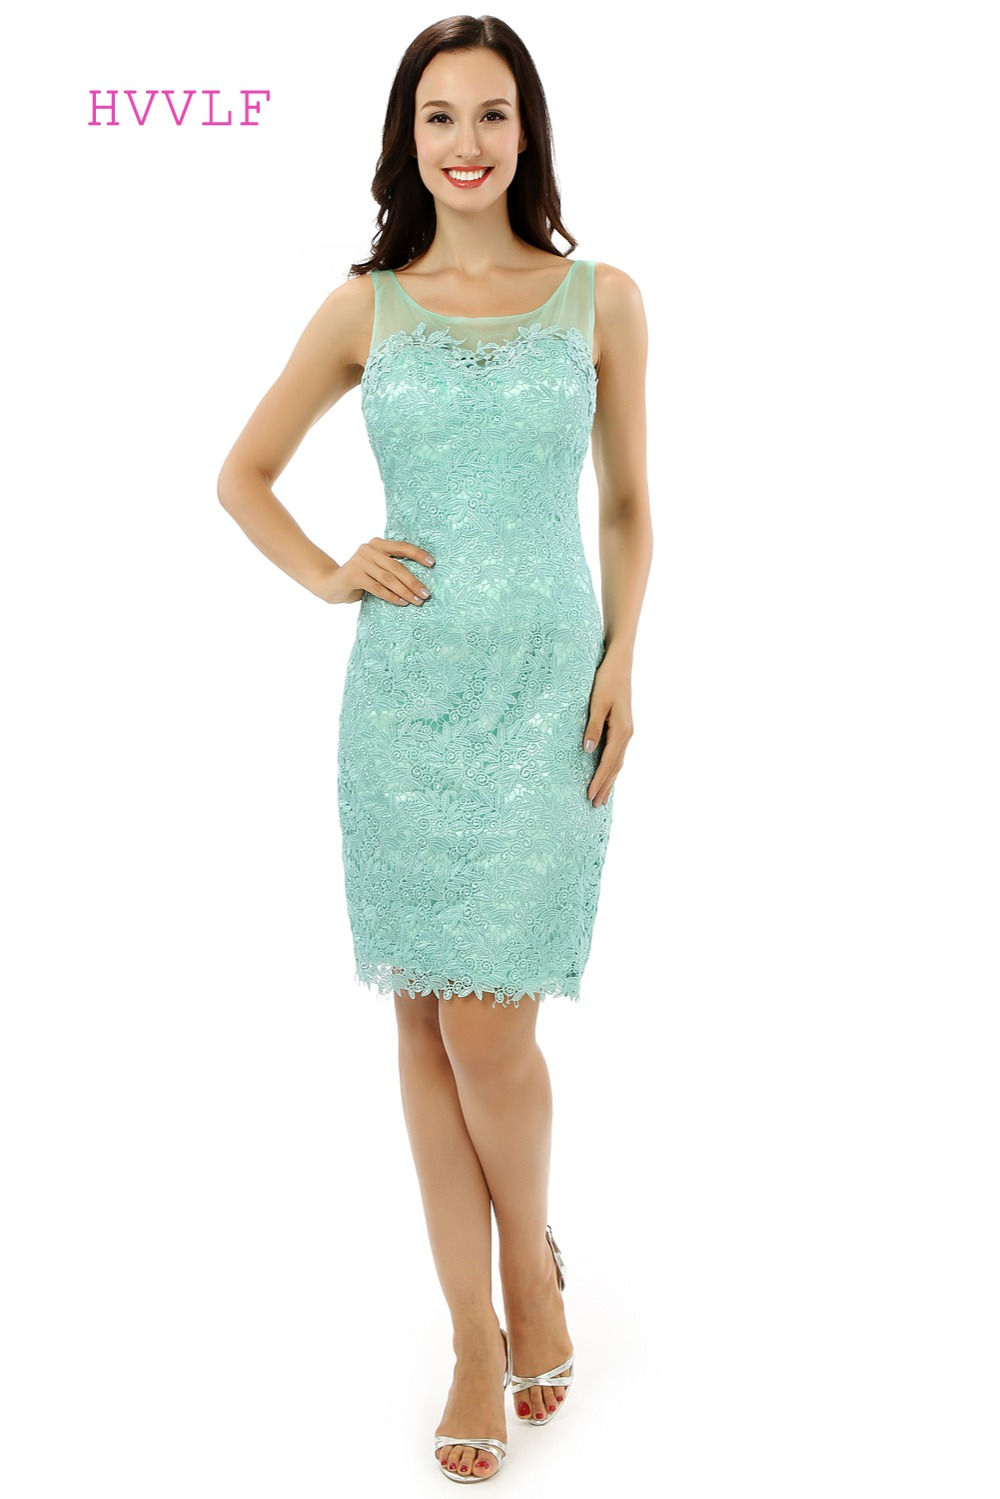 Loyal Vintage 2019 Cocktail Dresses Sheath Scoop Knee Length Appliques Lace Mint Green Short Homecoming Dresses Weddings & Events